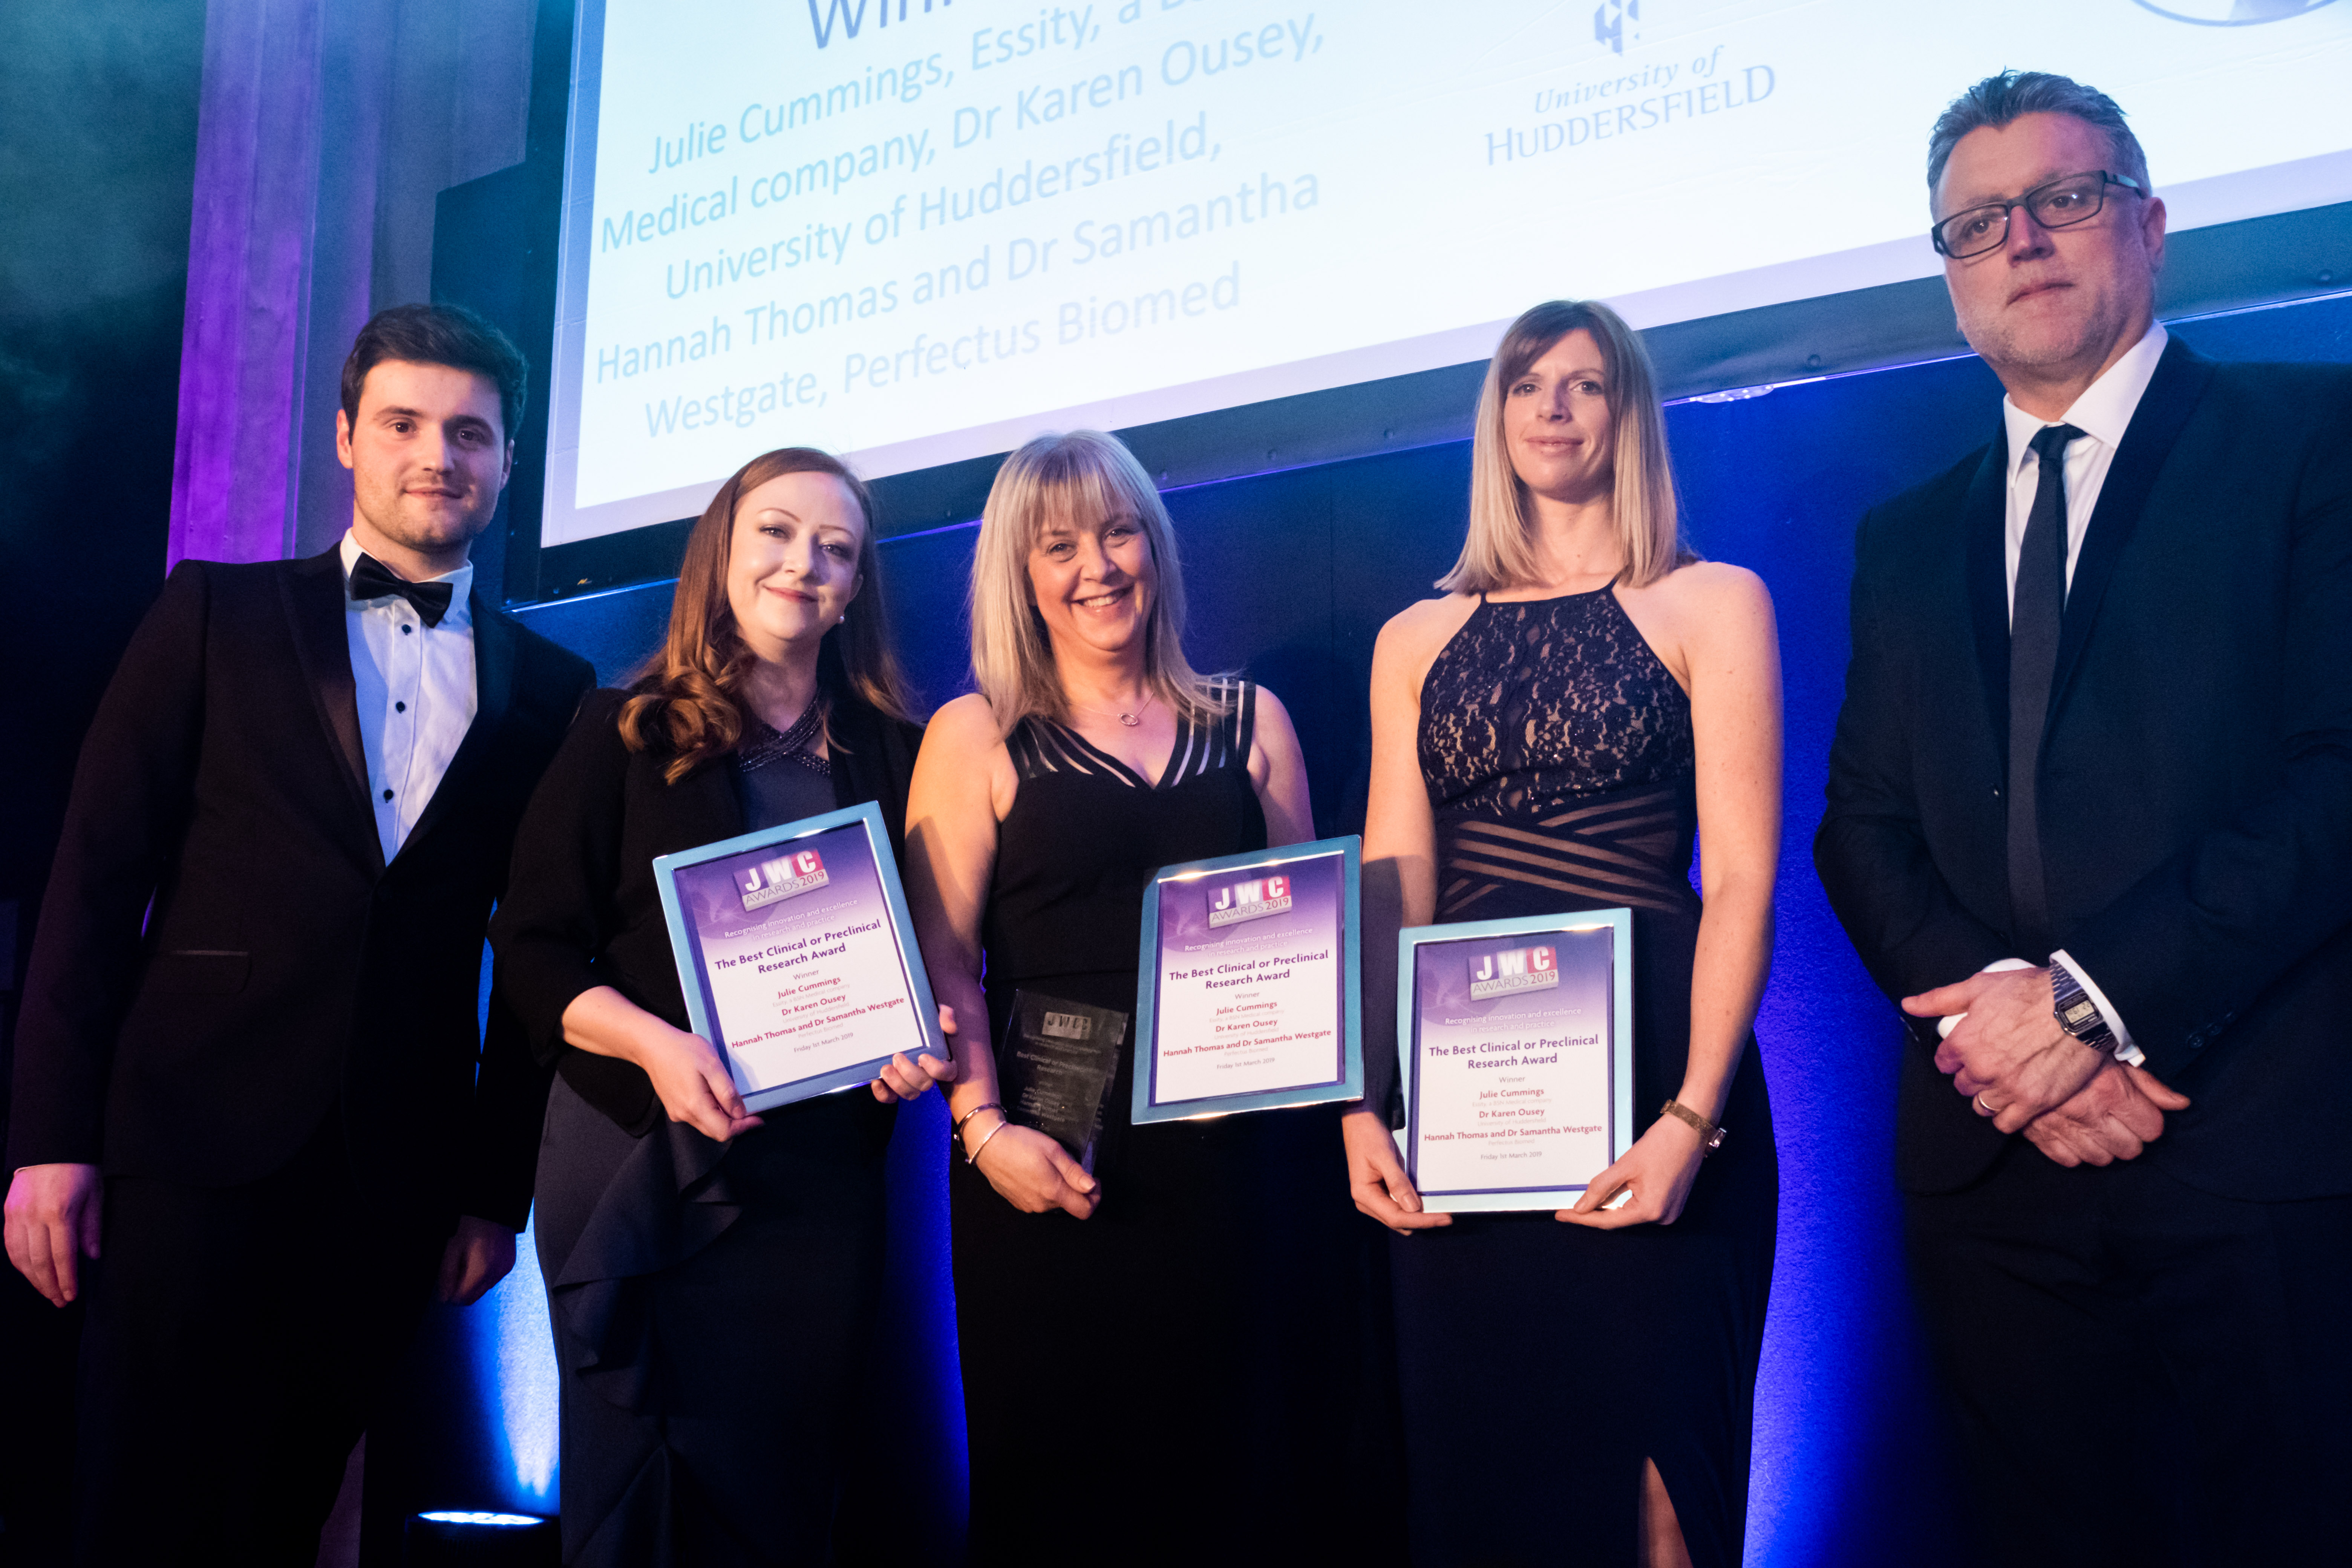 Perfectus Biomed, Essity and University of Huddersfield winners at the JWC Awards 2019